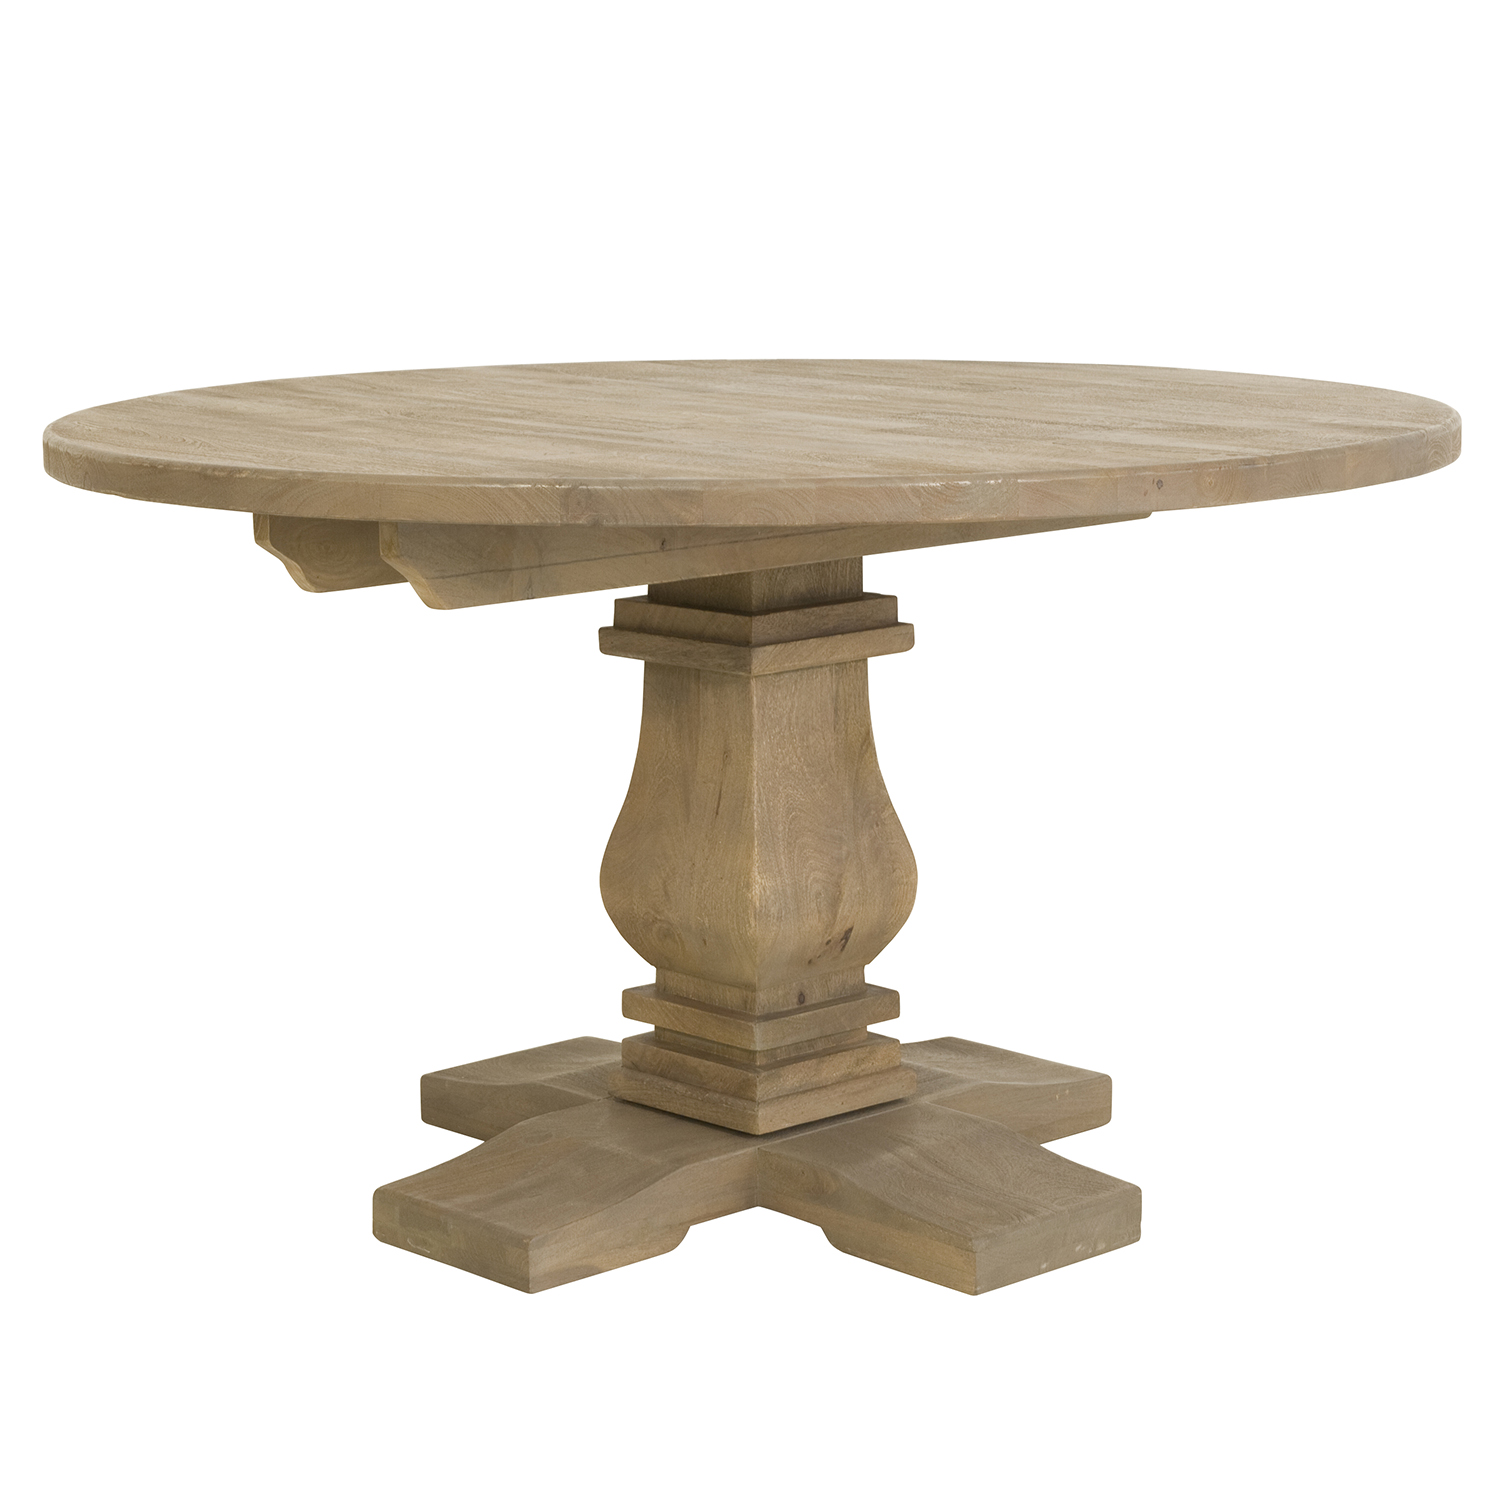 BO0108891_BOSTON ROUND DINING TABLE_GREY WASH_A copy.jpg